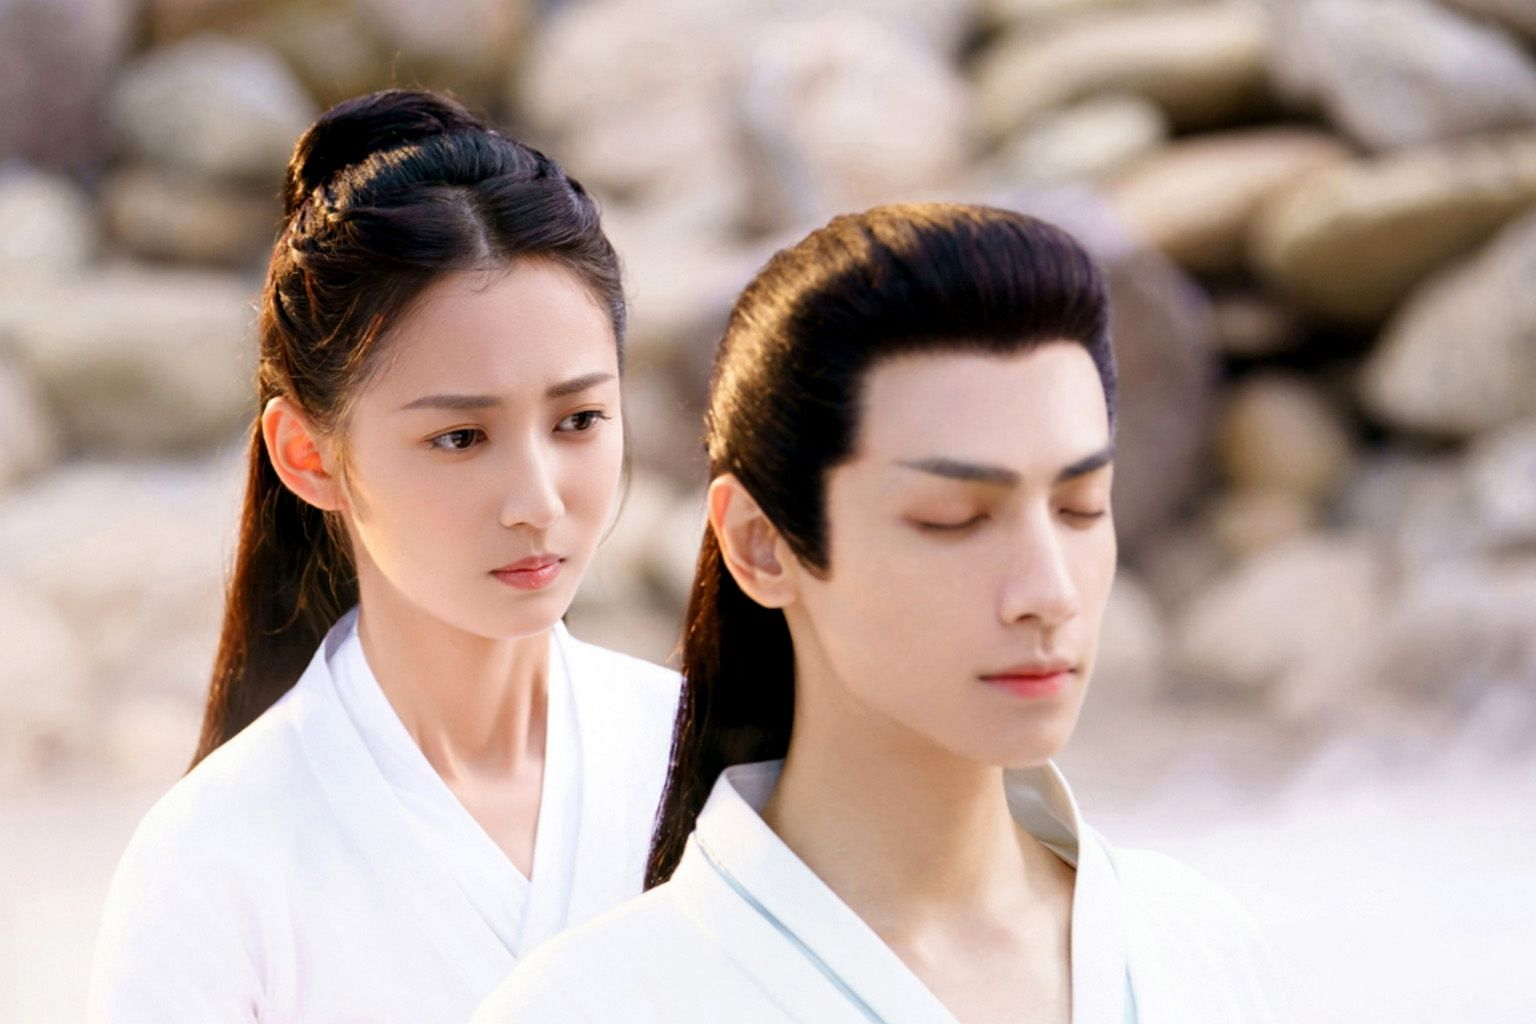 (Far left) Yukee Chen and Leo Luo star in the Chinese period drama And The Winner Is Love. (Left) Seven Tan and Allen Ren star in Under The Power, a Chinese period drama set during the Ming dynasty.